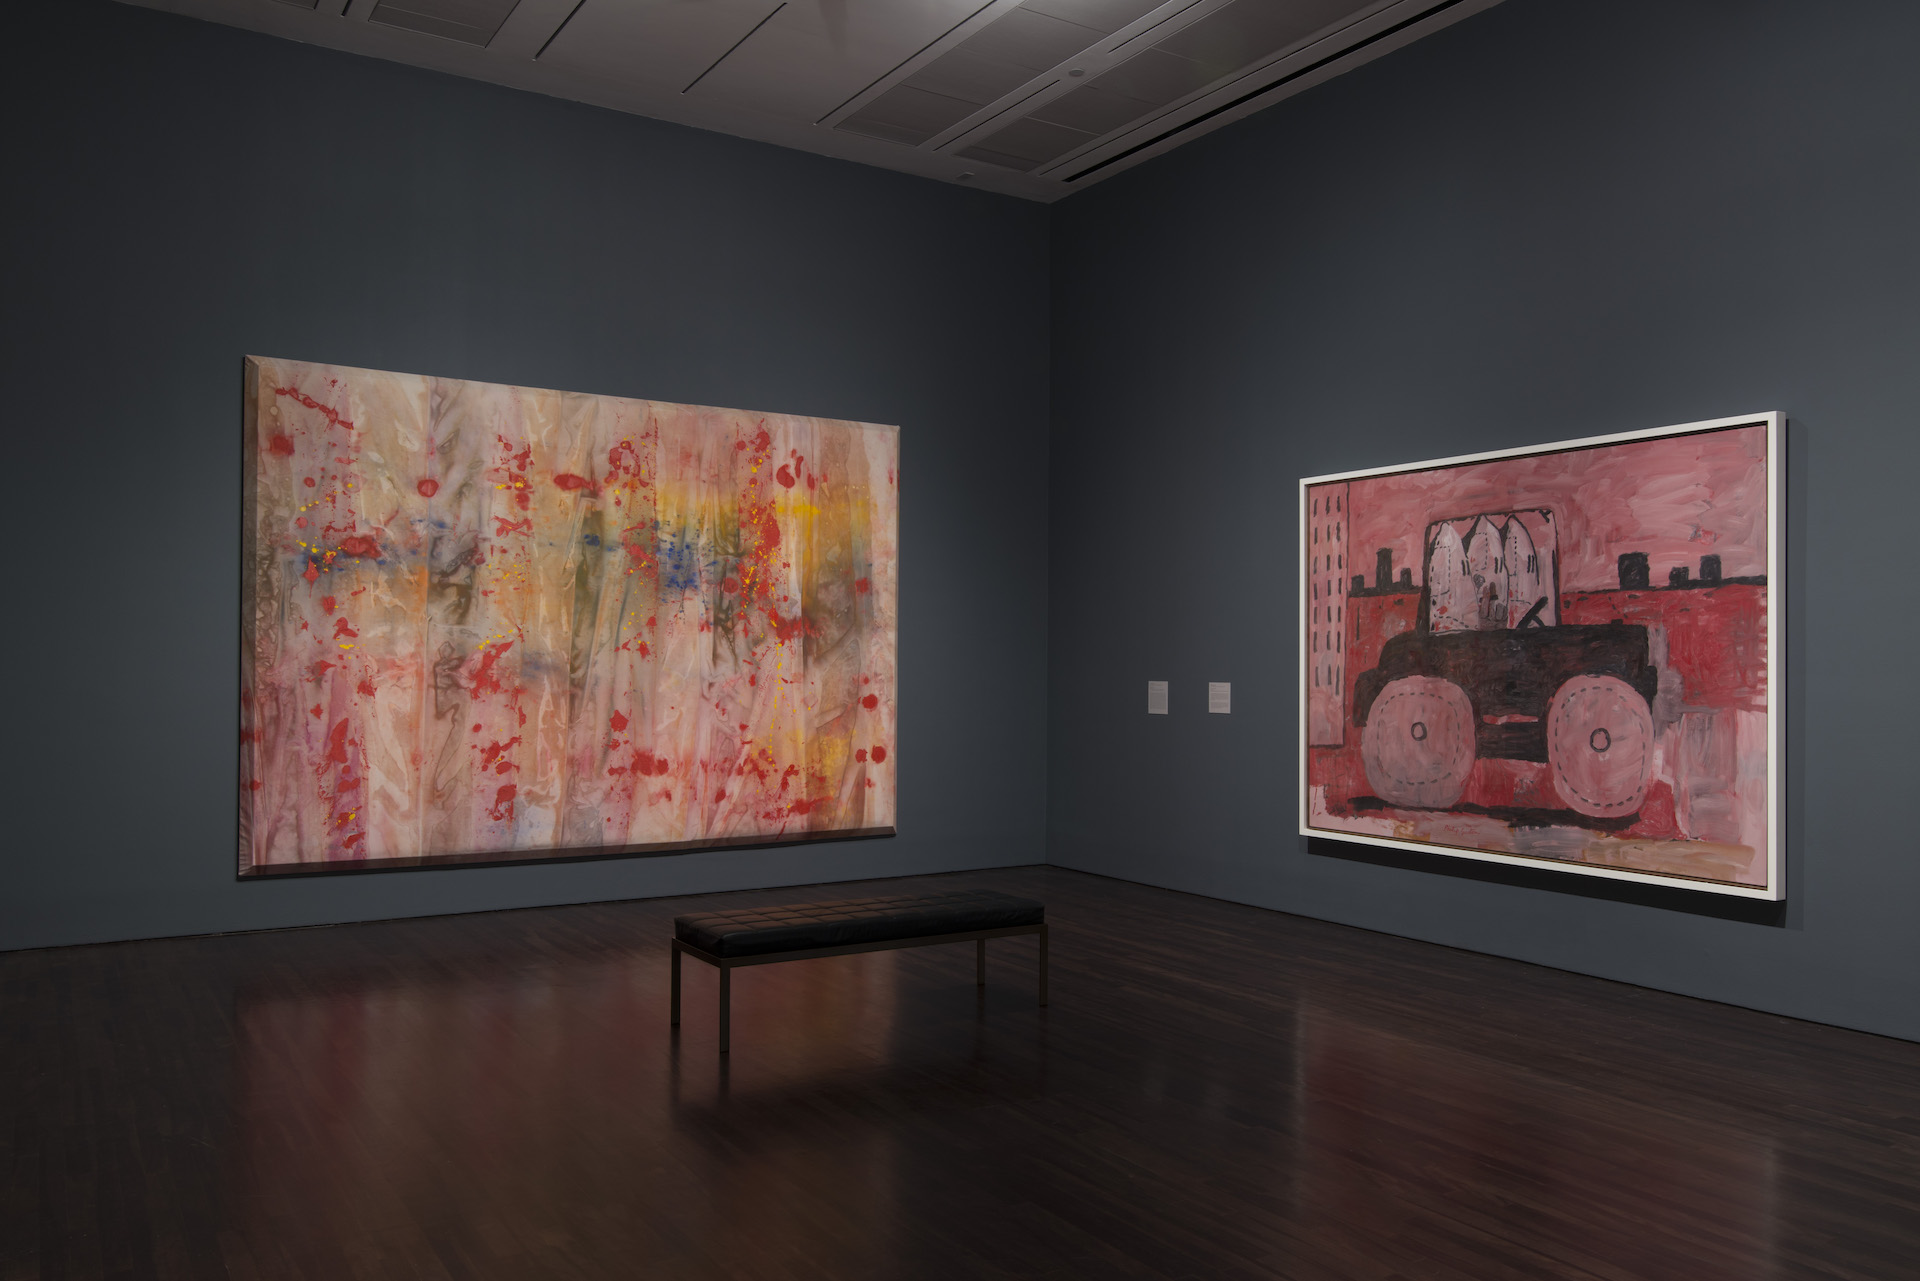 """Installation view of """"Witness: Art and Civil Rights in the Sixties"""" at theBlanton, two artworks are hung on the walls, one is an abstract expressionist work and the other depicts a car driving in a city"""